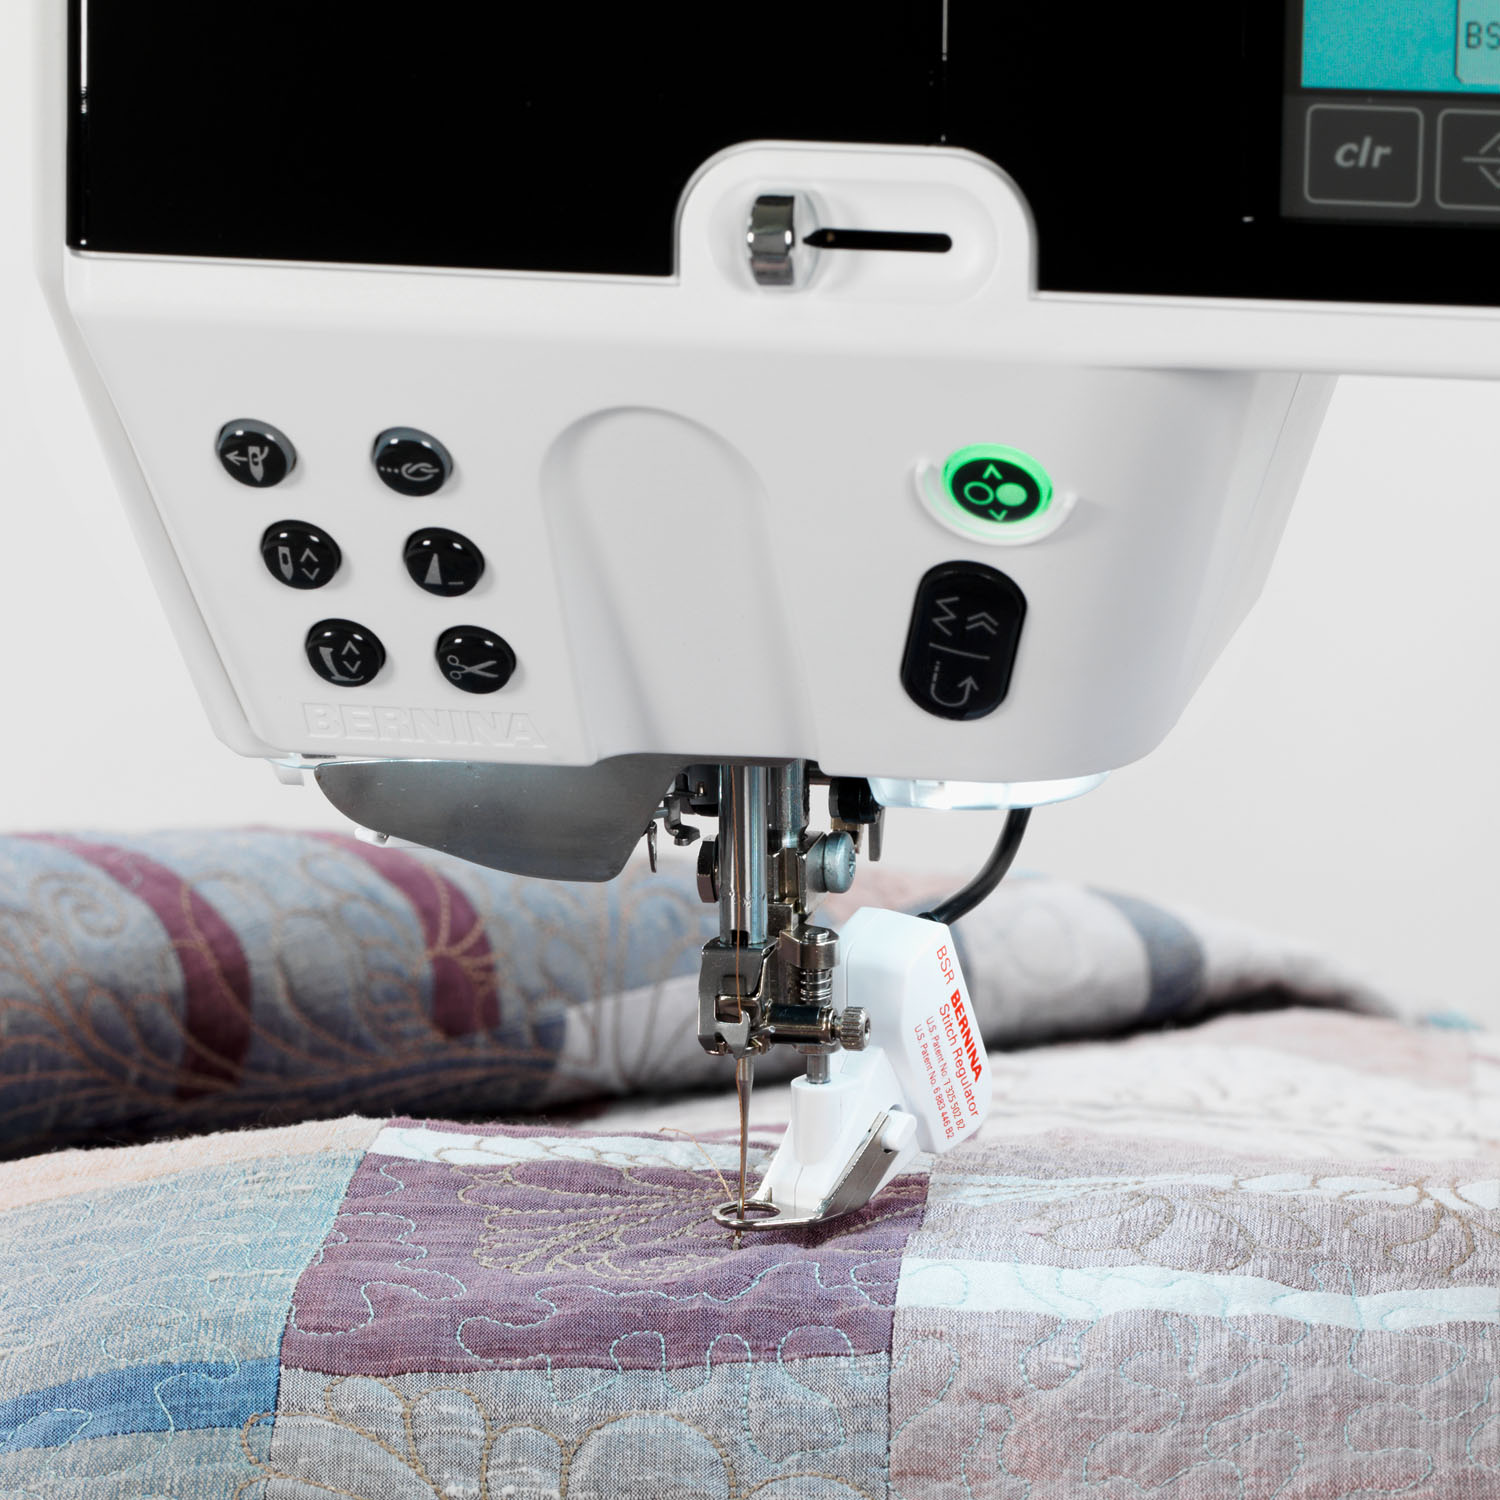 BERNINA Stitch Regulator for an even stitch pattern